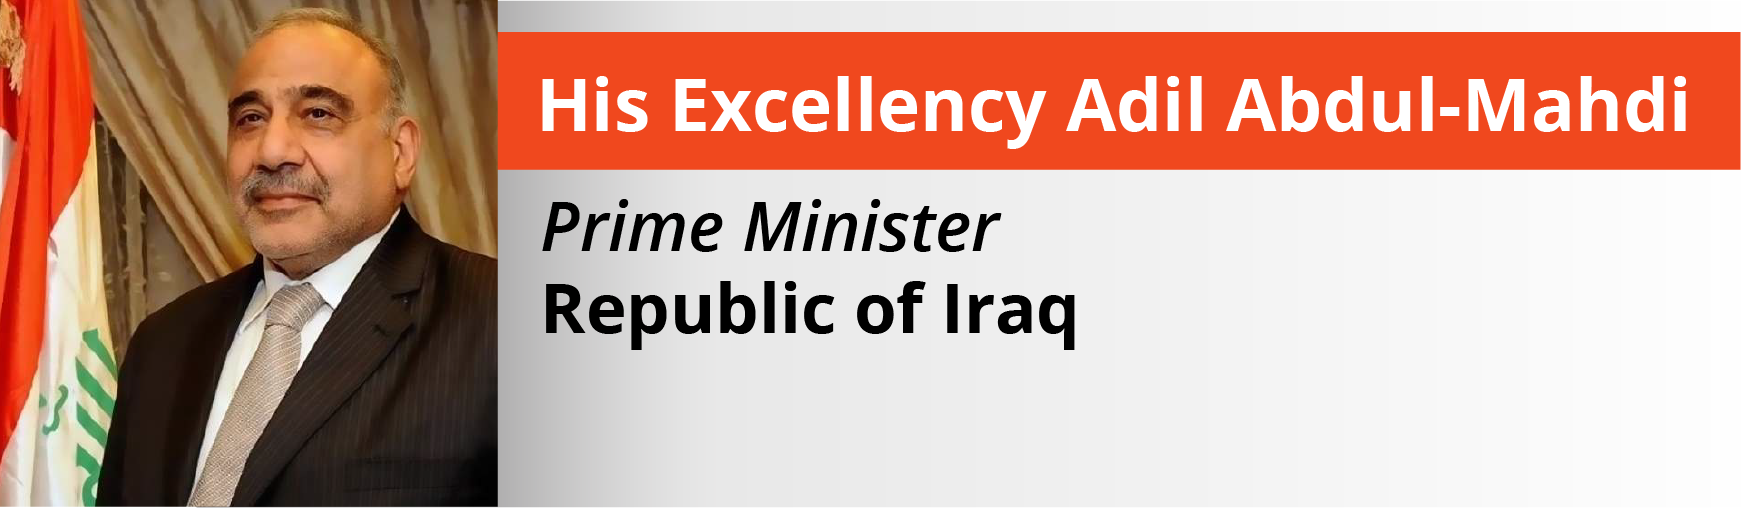 2018 October Newsletter Iraq Prime minister headsh